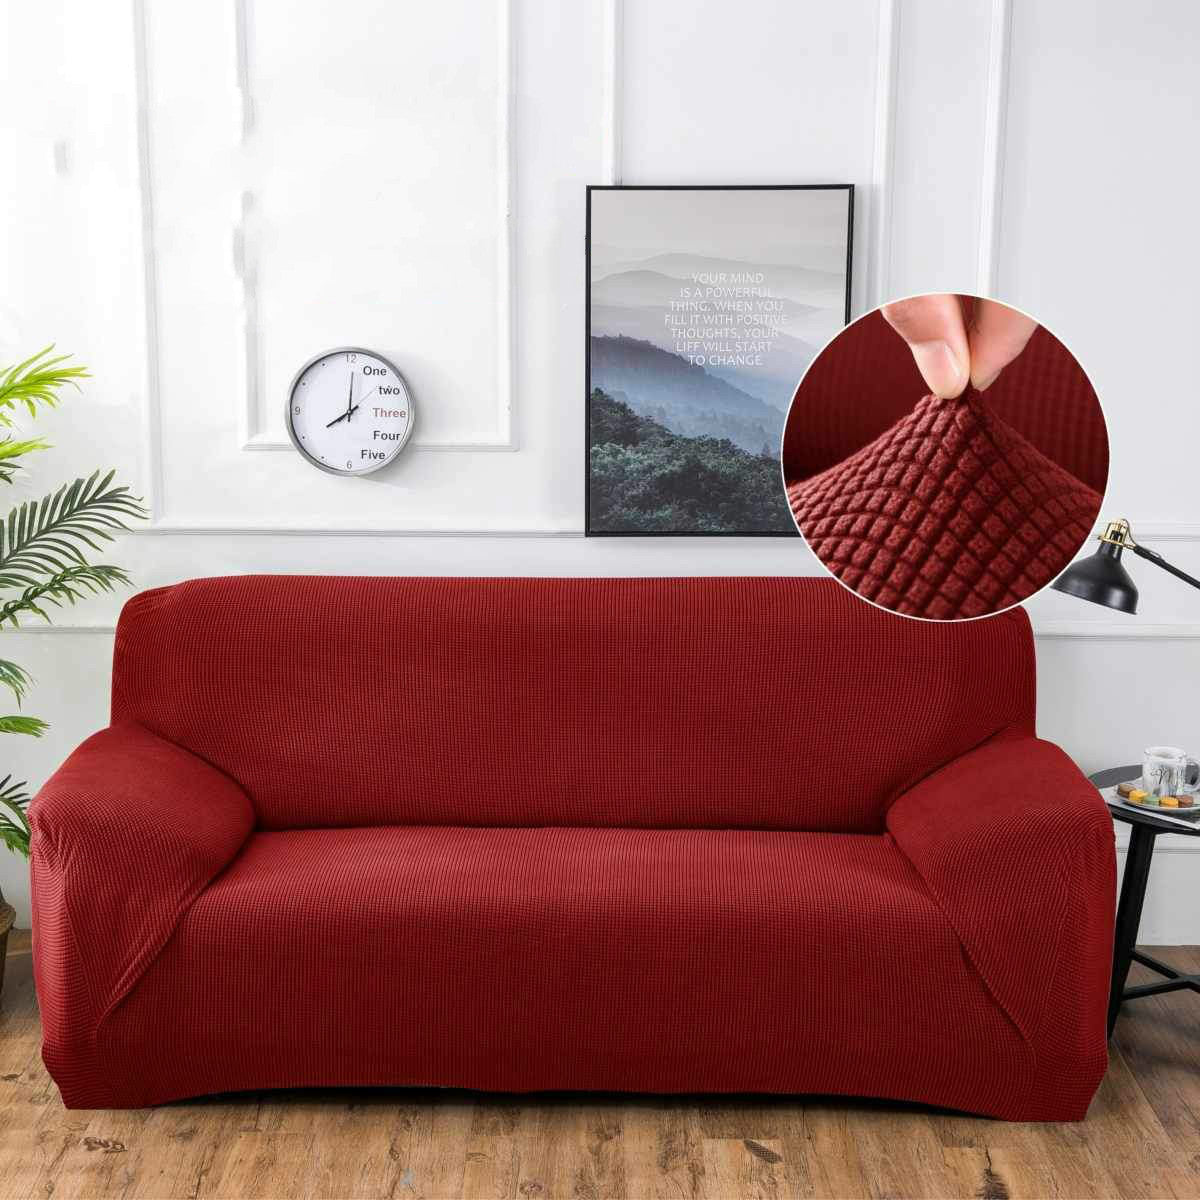 Sofa Slipover High Quality 1/2/3/4 Seater NEW Thickened Elastic Stretch Slipcovers sofa cover Couch Cover Sectional L Shaped Slipcover Armchair Cover